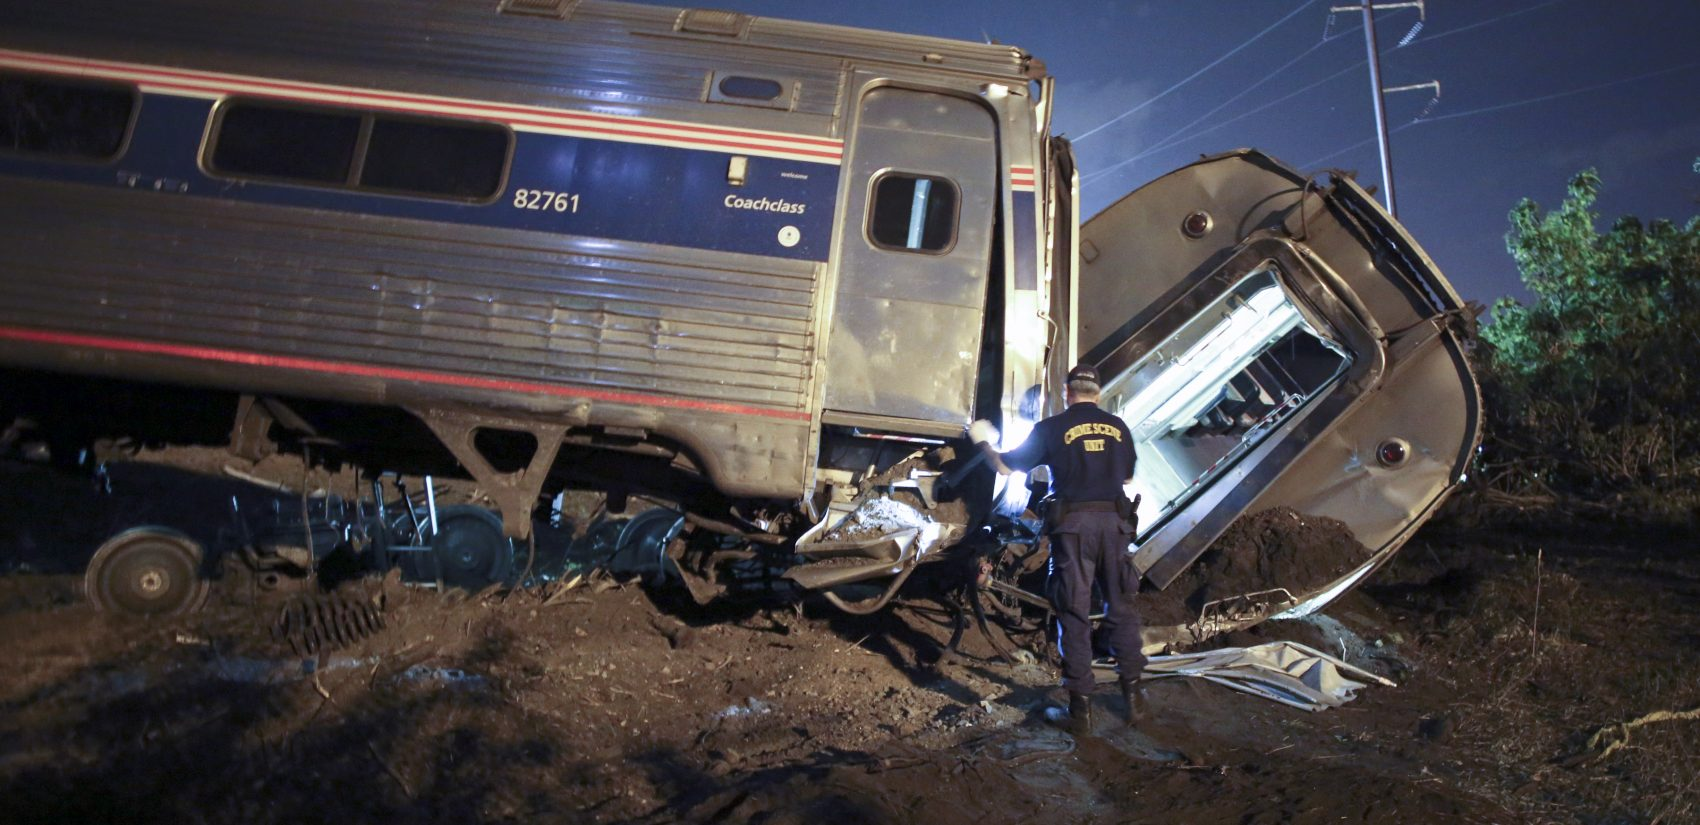 FILE - In this May 12, 2015, file photo, emergency personnel work the scene of a deadly train wreck in Philadelphia. An Amtrak train headed to New York City derailed and crashed in Philadelphia. Federal authorities continue to investigate the crash that killed eight people and injured more than 200. The train derailed while traveling more than twice the speed limit around a curve; travel along the Northeast Corridor was disrupted for days while the tracks were replaced. (AP Photo/ Joseph Kaczmarek, File)